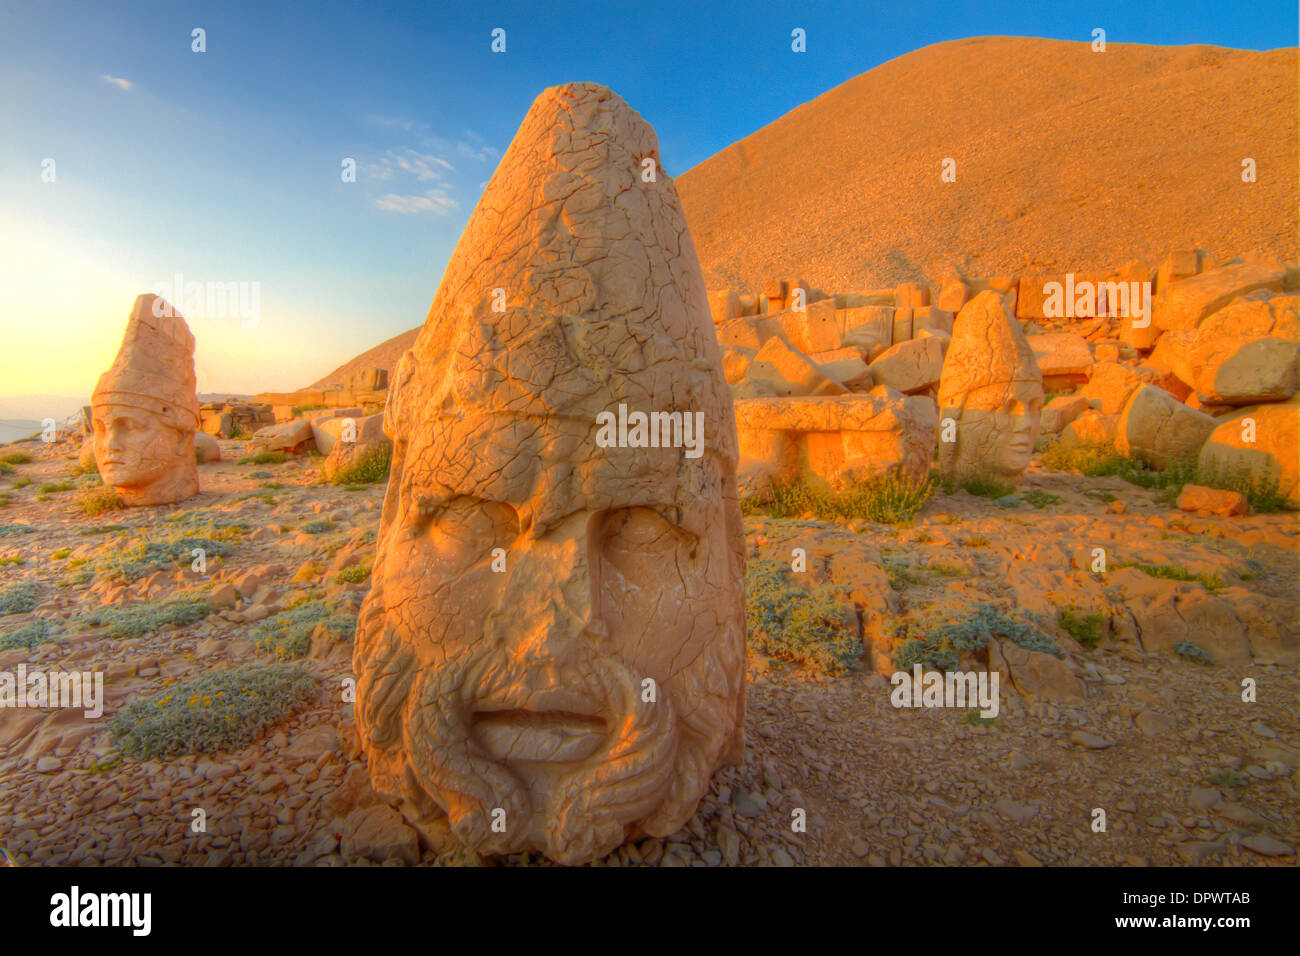 Huge Zeus sculpture Mt. Nemrut National Park Turkey Ancient remnants of 2000 year old Commagene culture on 7,000 foot mountain - Stock Image